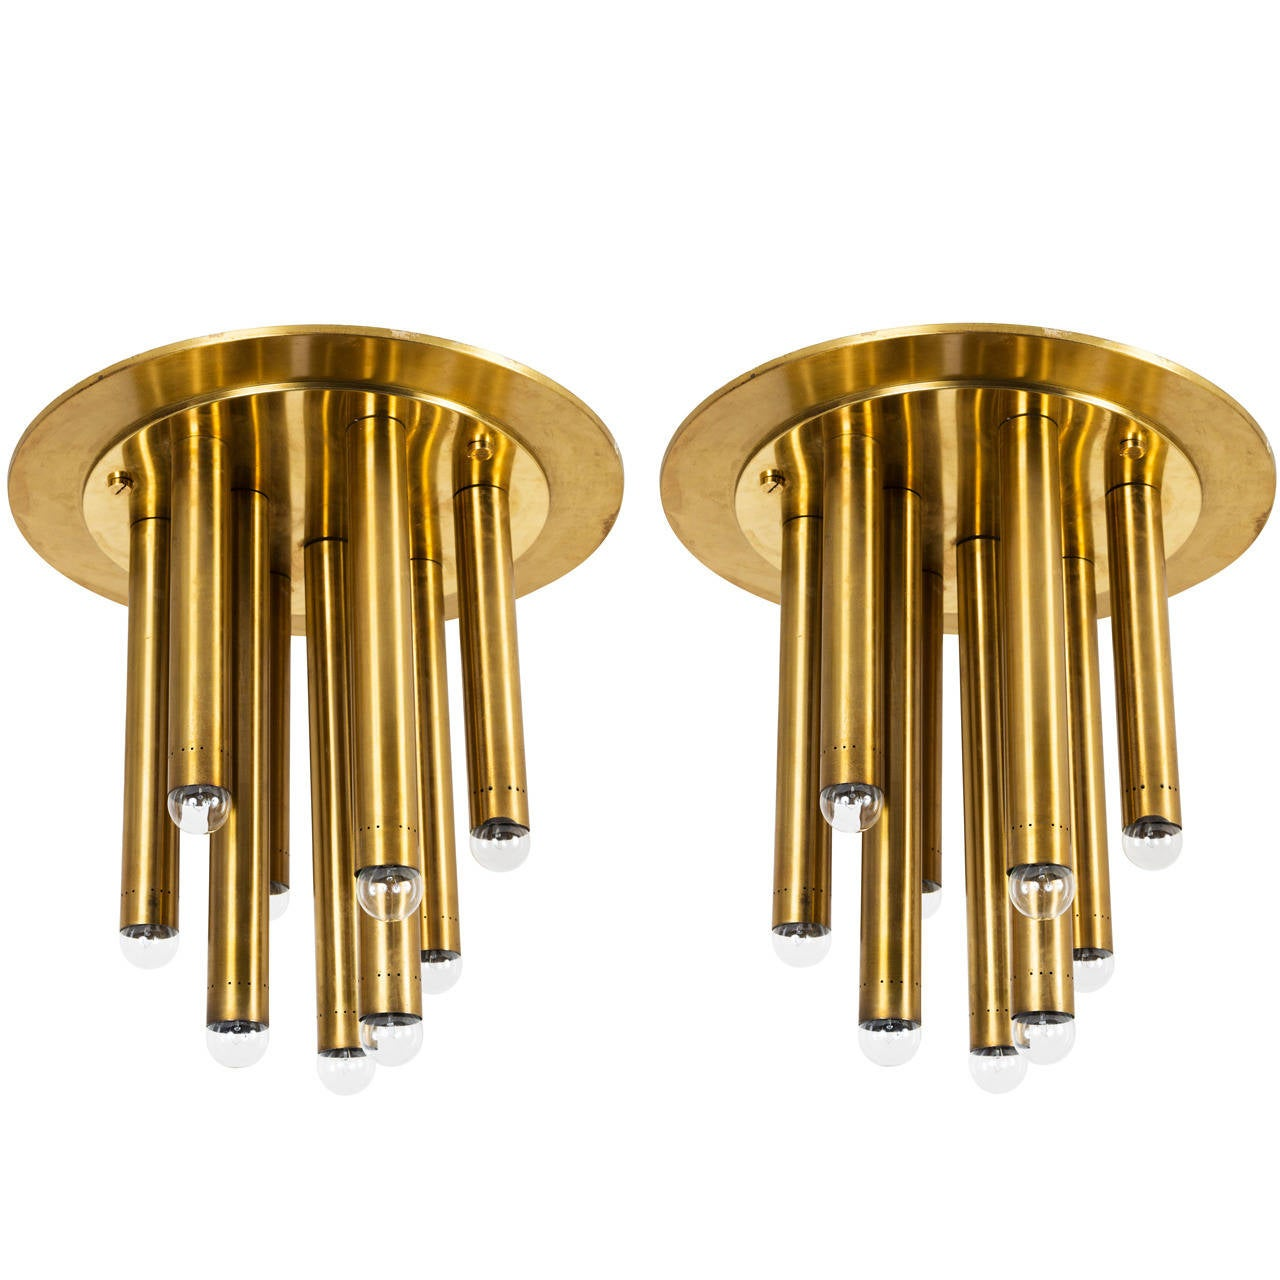 Pair of Brass Italian Ceiling Lights 1